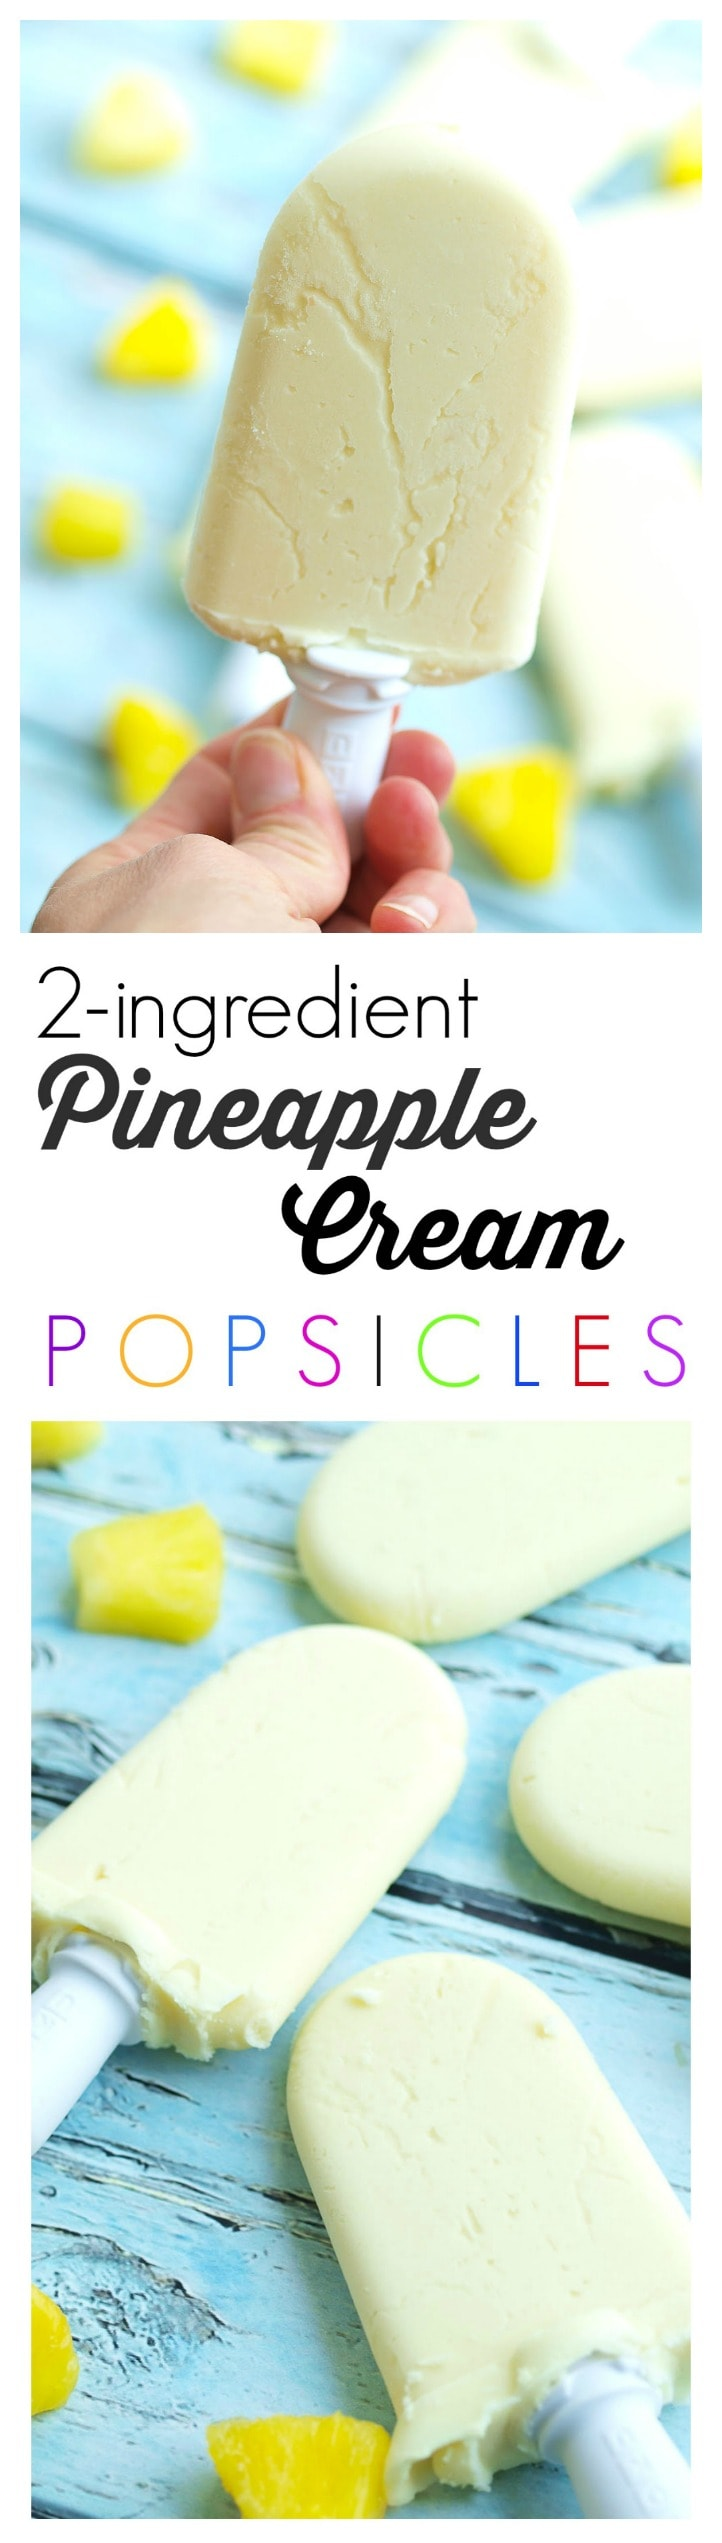 So EASY! 2 ingredient Pineapple Cream Popsicles. Make healthy popsicles at home! This is a vegan and gluten-free recipe that makes a great snack or dessert.